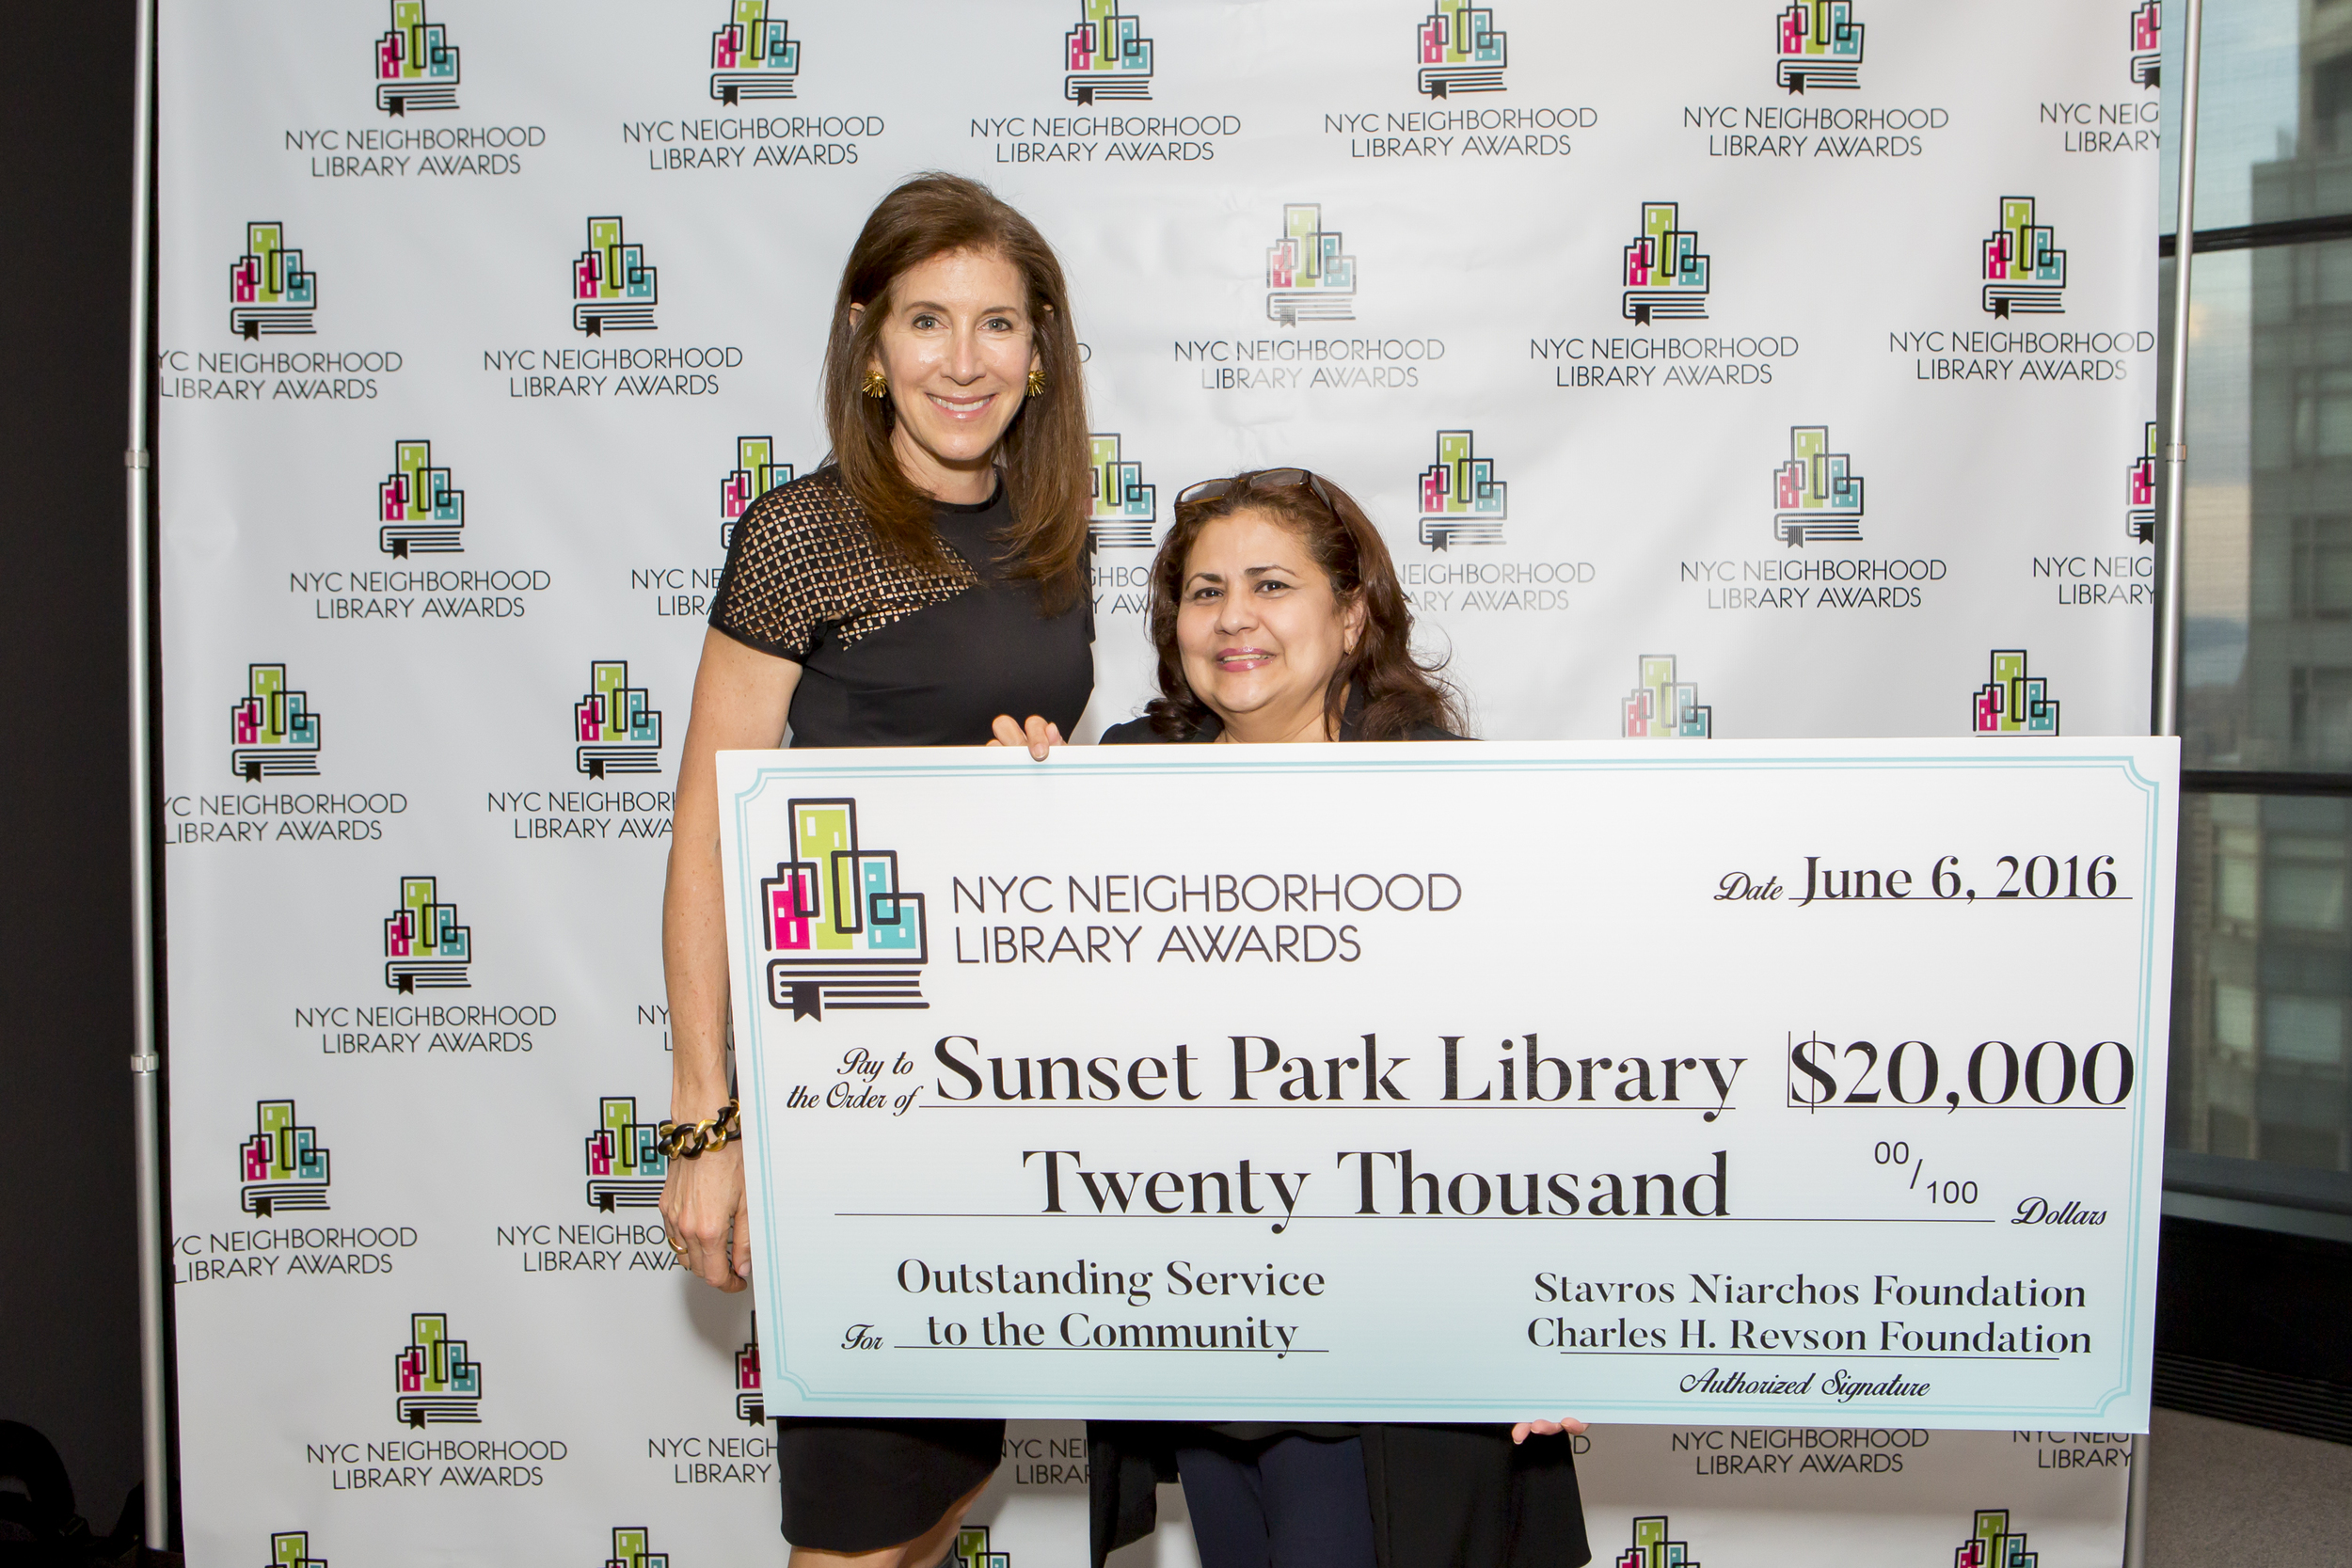 Linda Johnson, President & CEO of the Brooklyn Public Library and Roxana Benavides, Manager of the Sunset Park Library